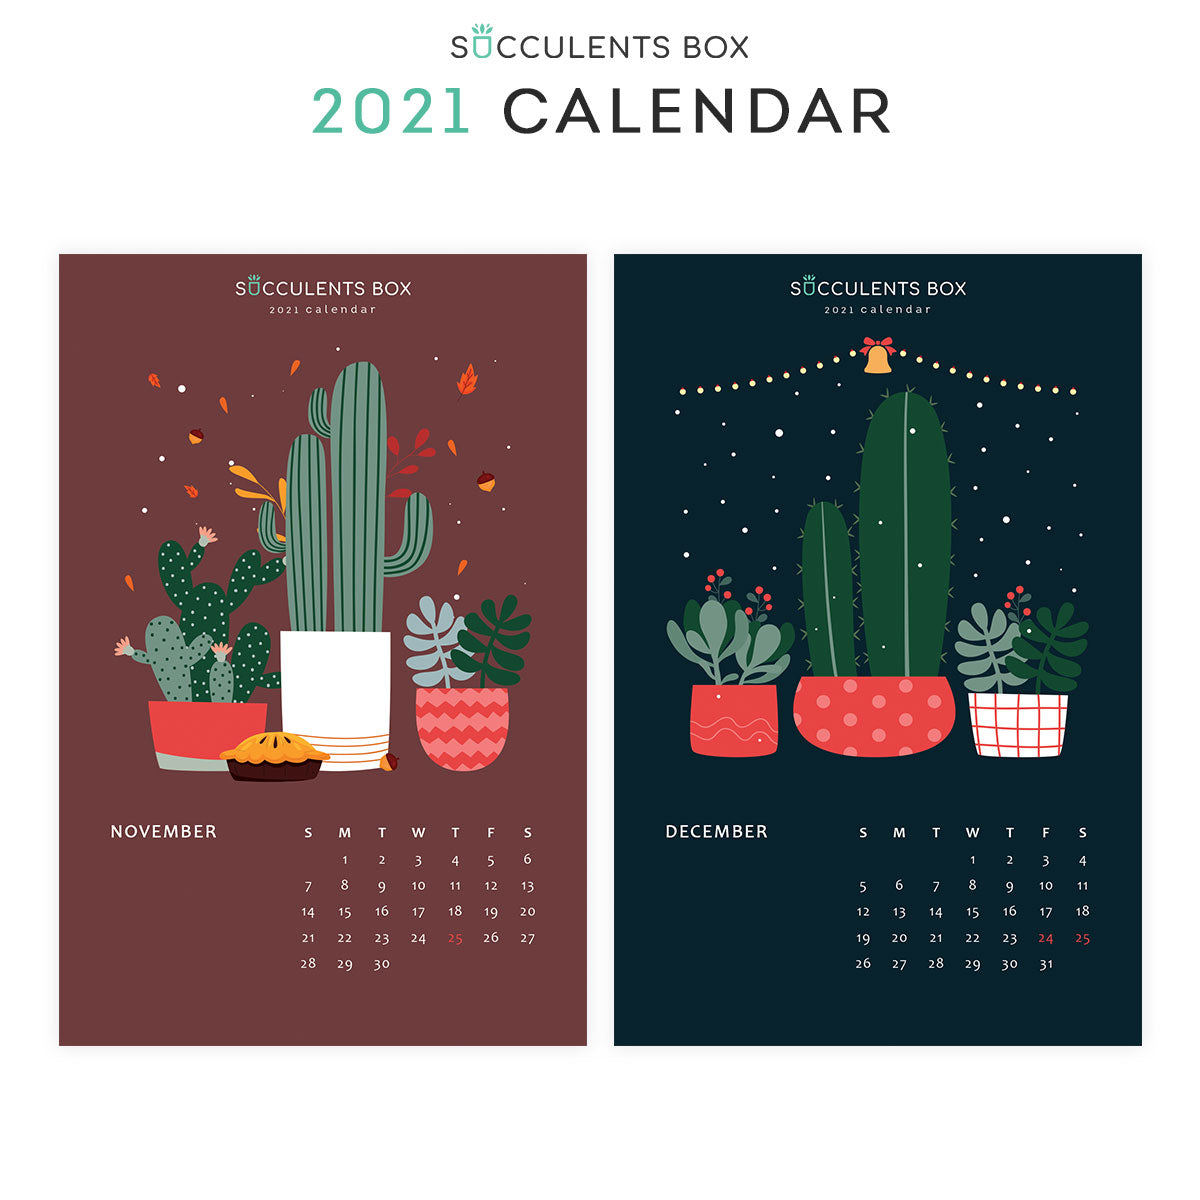 2021 Monthly Succulent Colorful Calendar | Free Printable ...